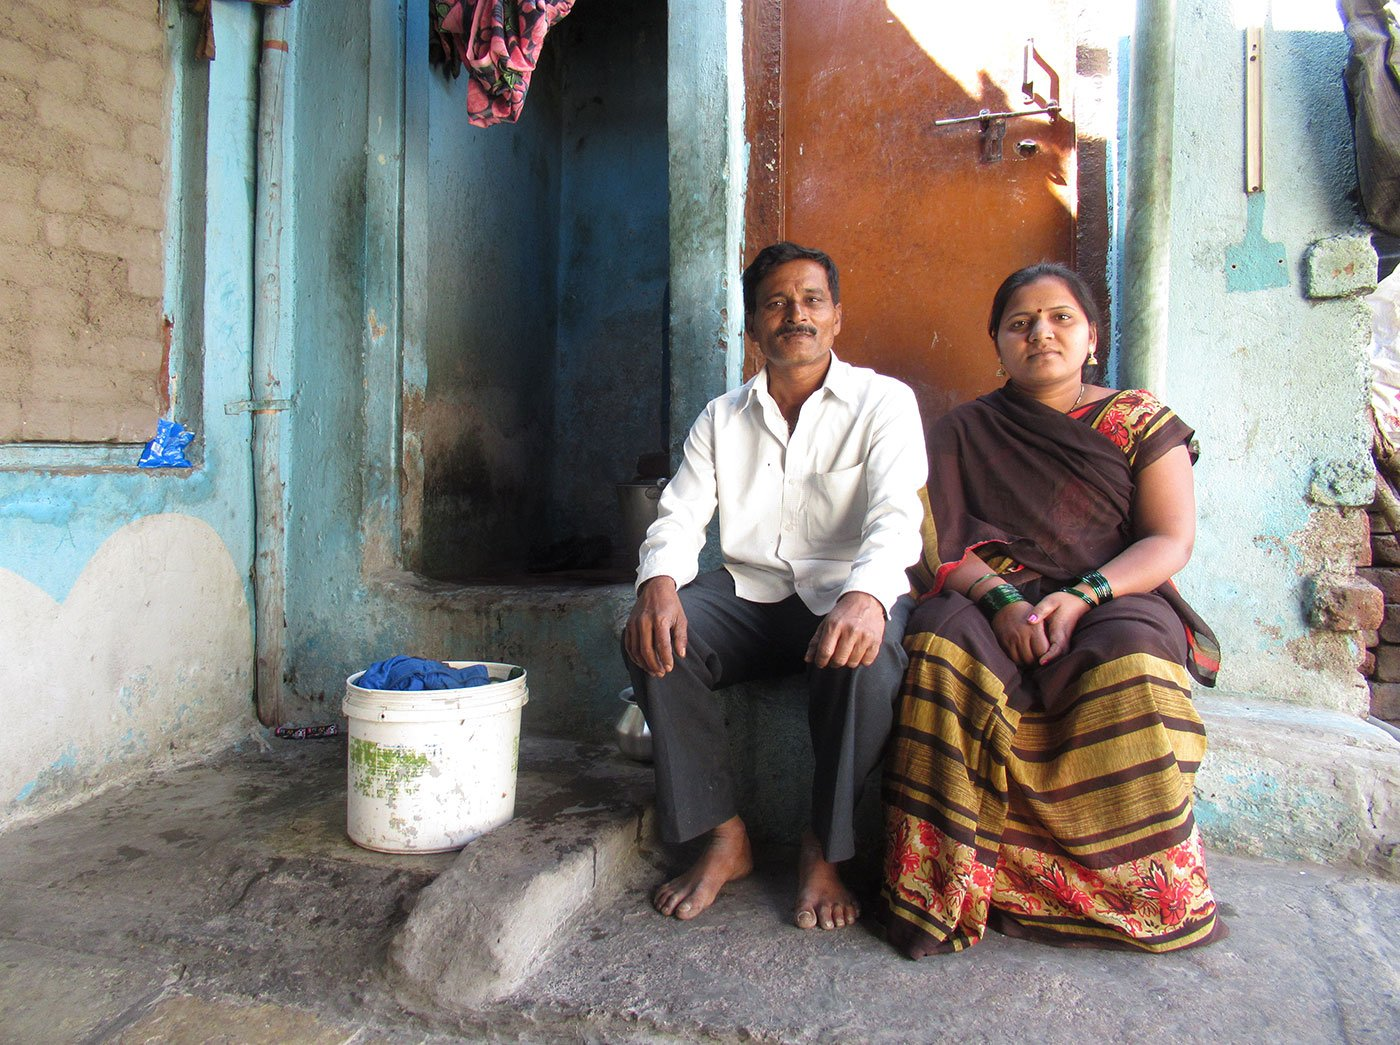 Sarika and Dayanand Satpute sitting outside a house